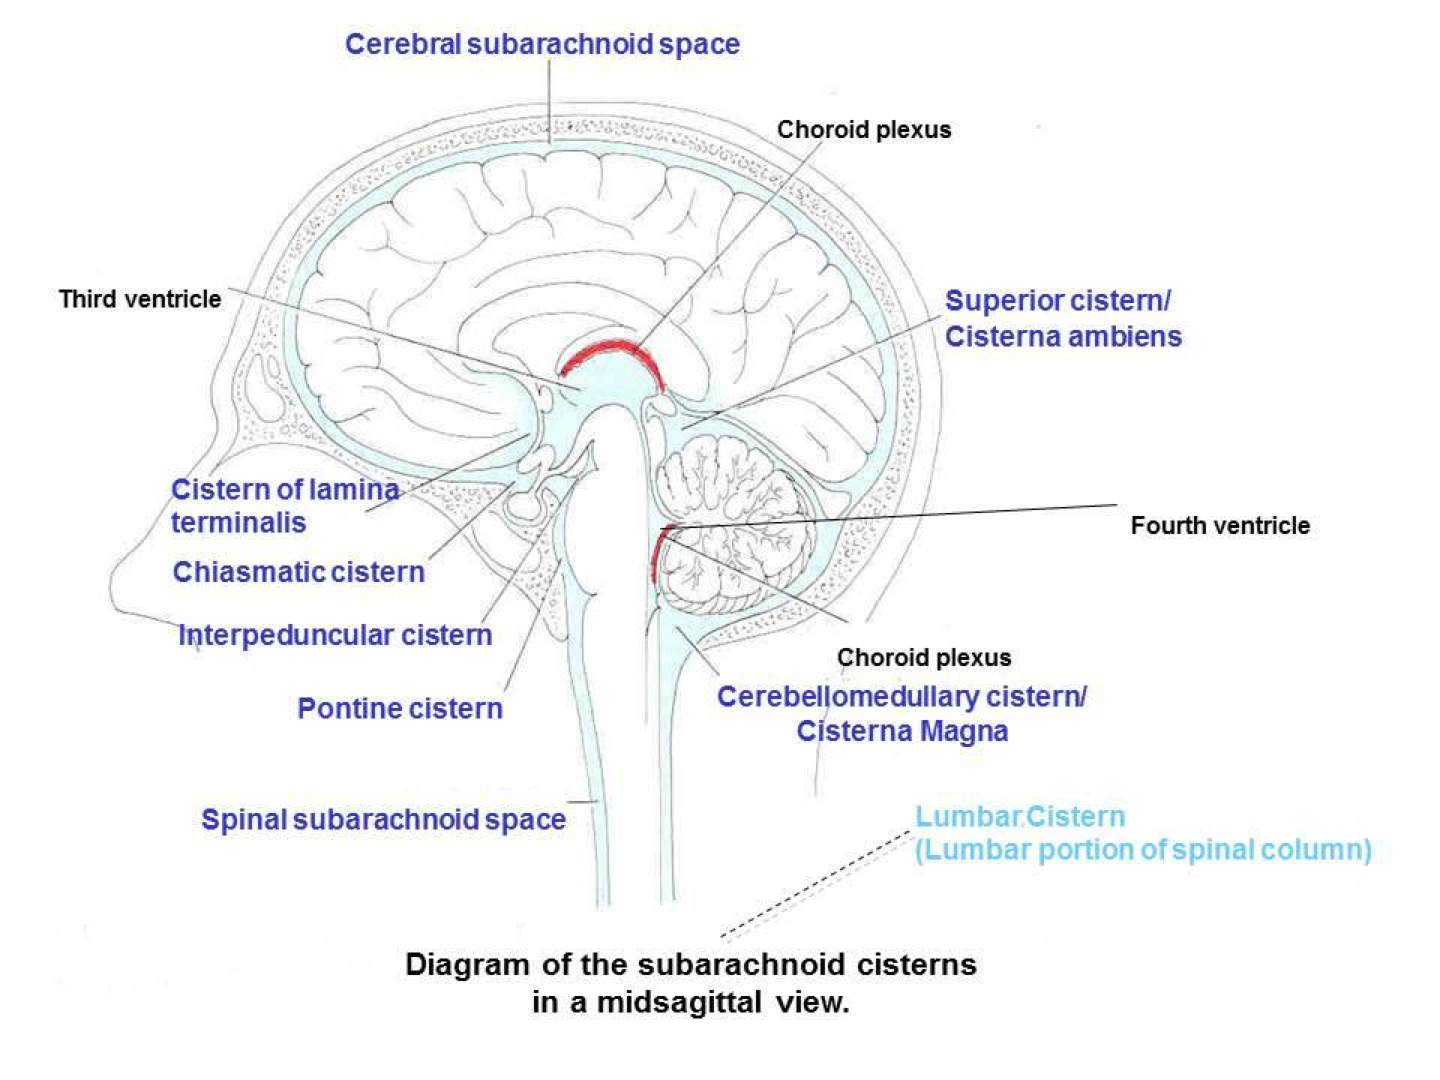 csf flow through expanded parts of sas called cisterns  (cerebellomedullary (magna), pontine